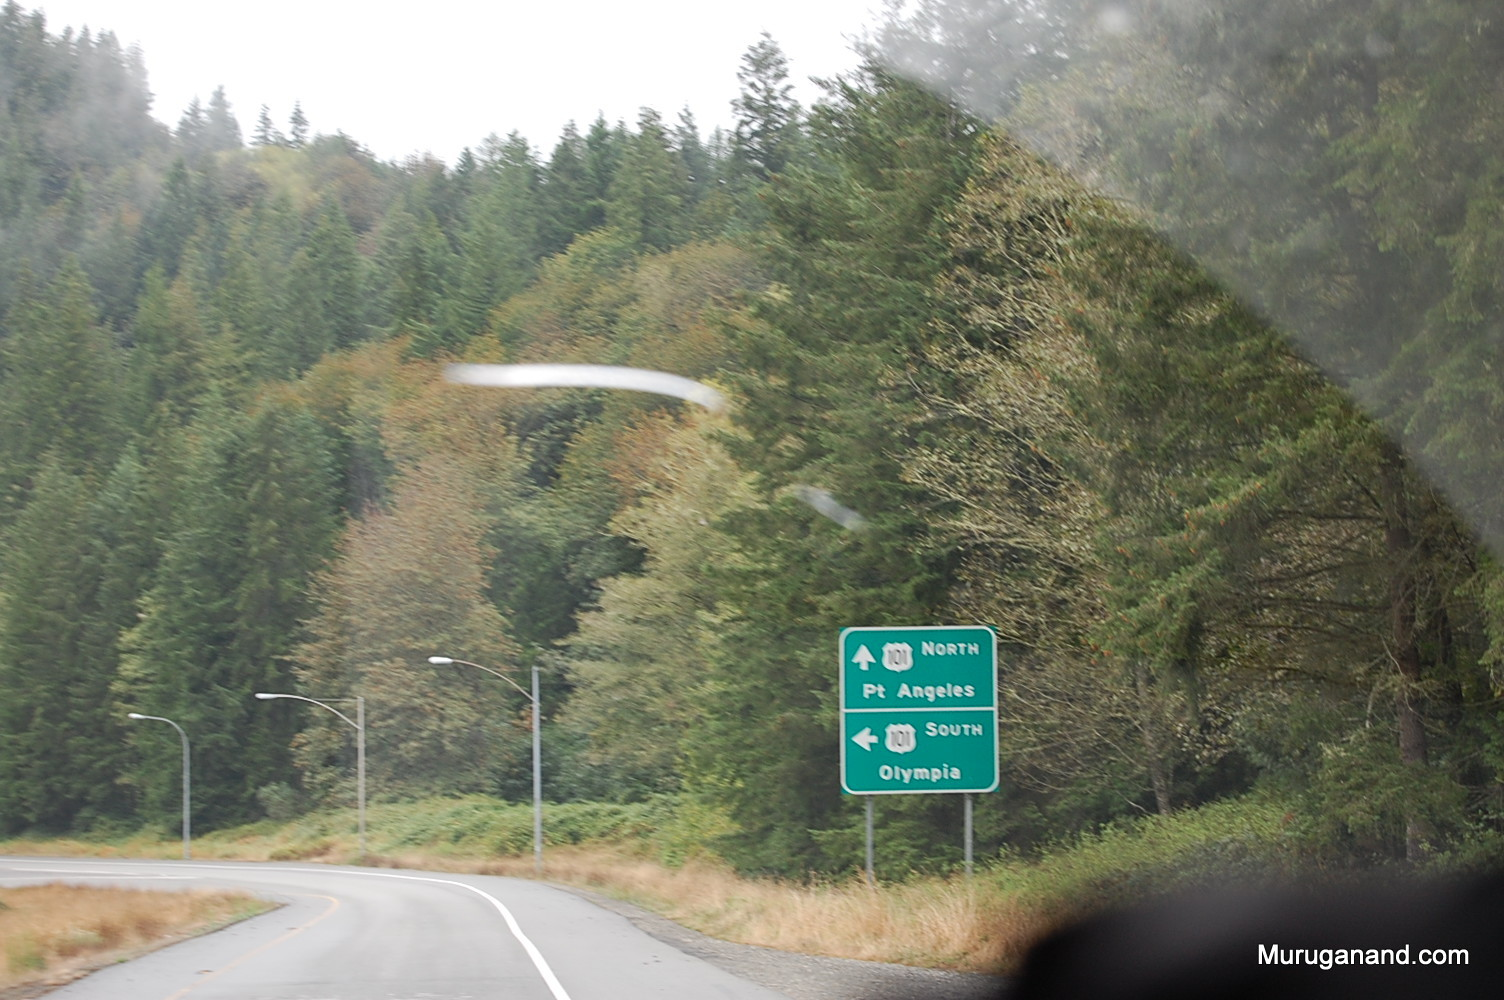 We are climbing up through HWY 101 for 17 miles from Port Angeles.